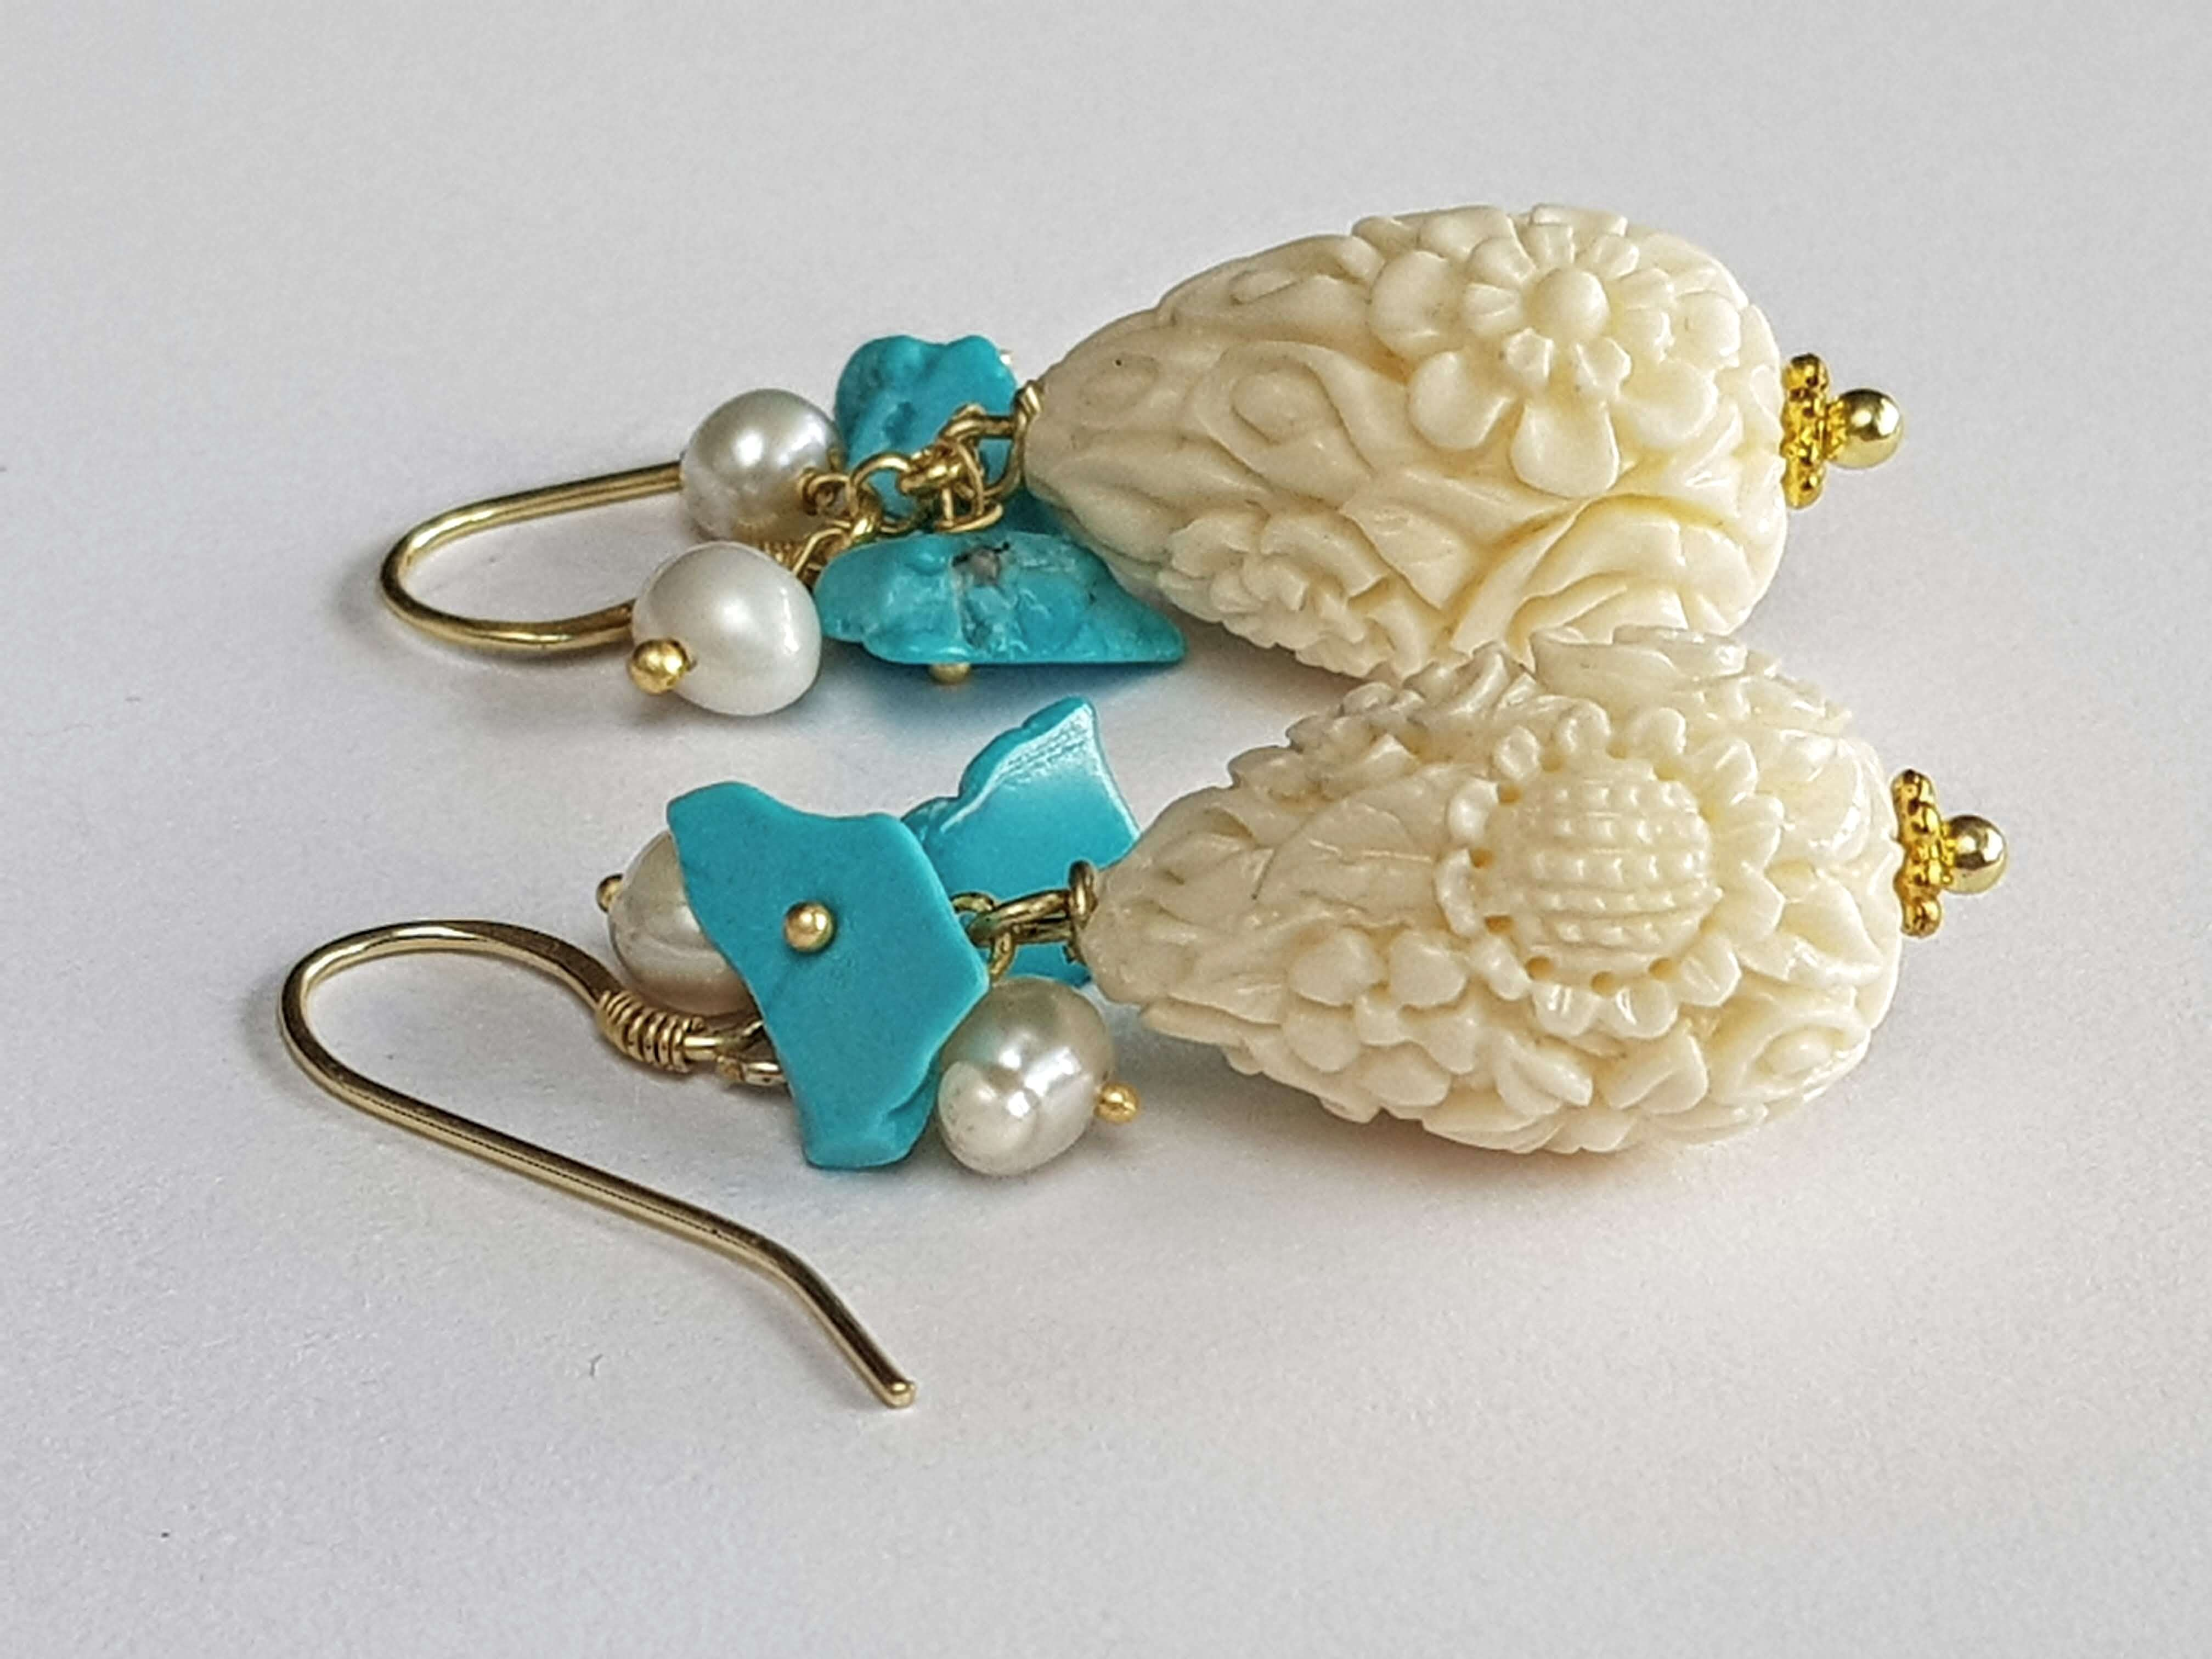 ecru and turquoise earrings | resort accessories